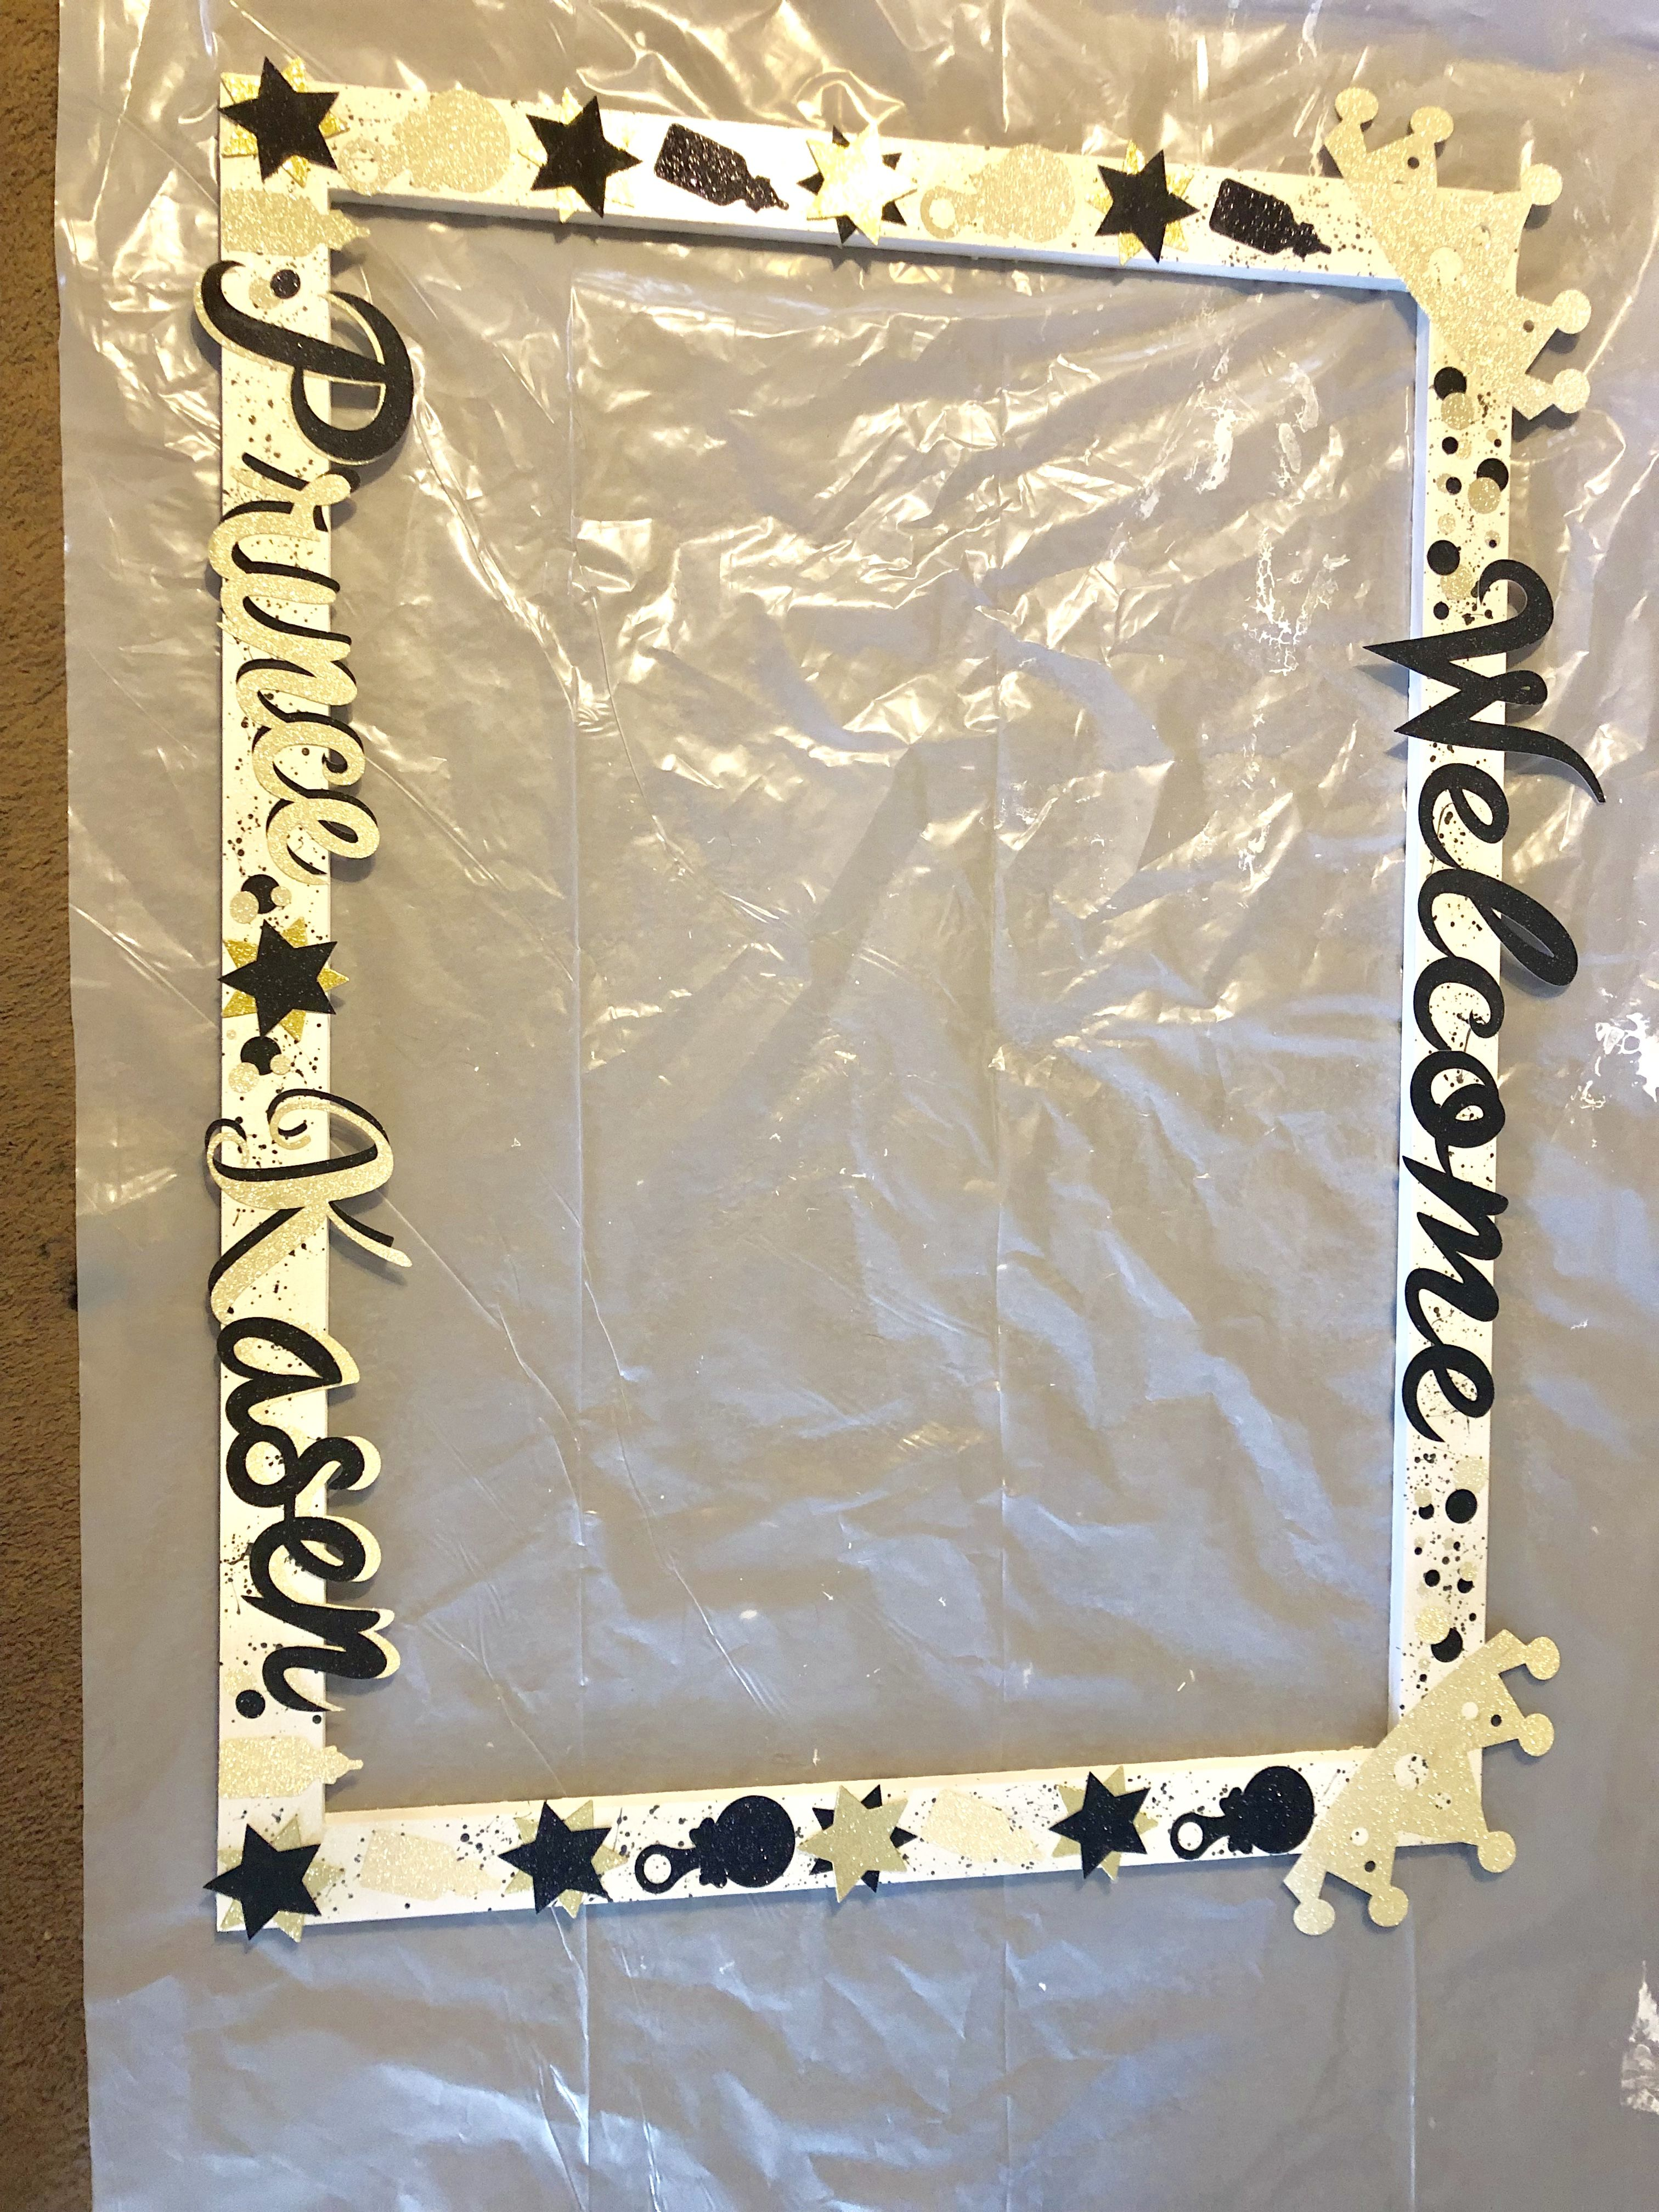 How To Make A Photo Frame Prop For Baby Shower : photo, frame, shower, Photo, Frame, Loved, Making, Shower, Prop,, Cricut, Creations,